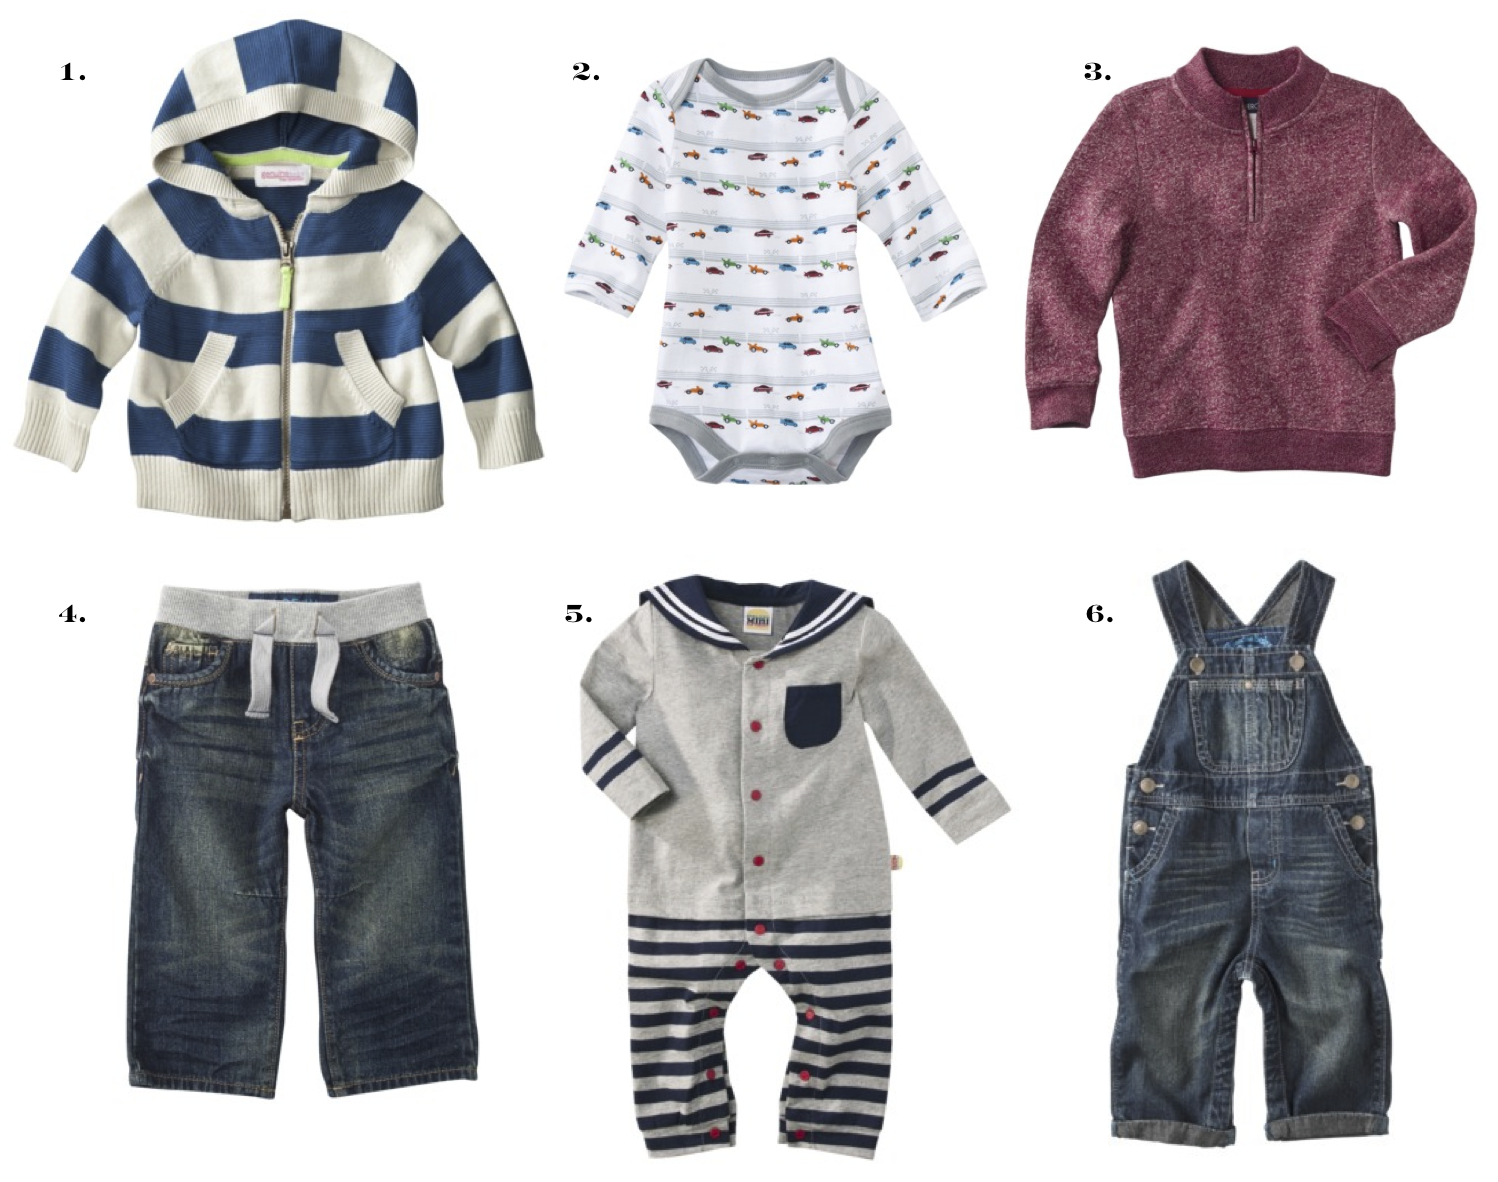 Newborn Baby Boy Clothes - Shop today for great deals on brand name items! Official site for Stage, Peebles, Goodys, Palais Royal & Bealls.